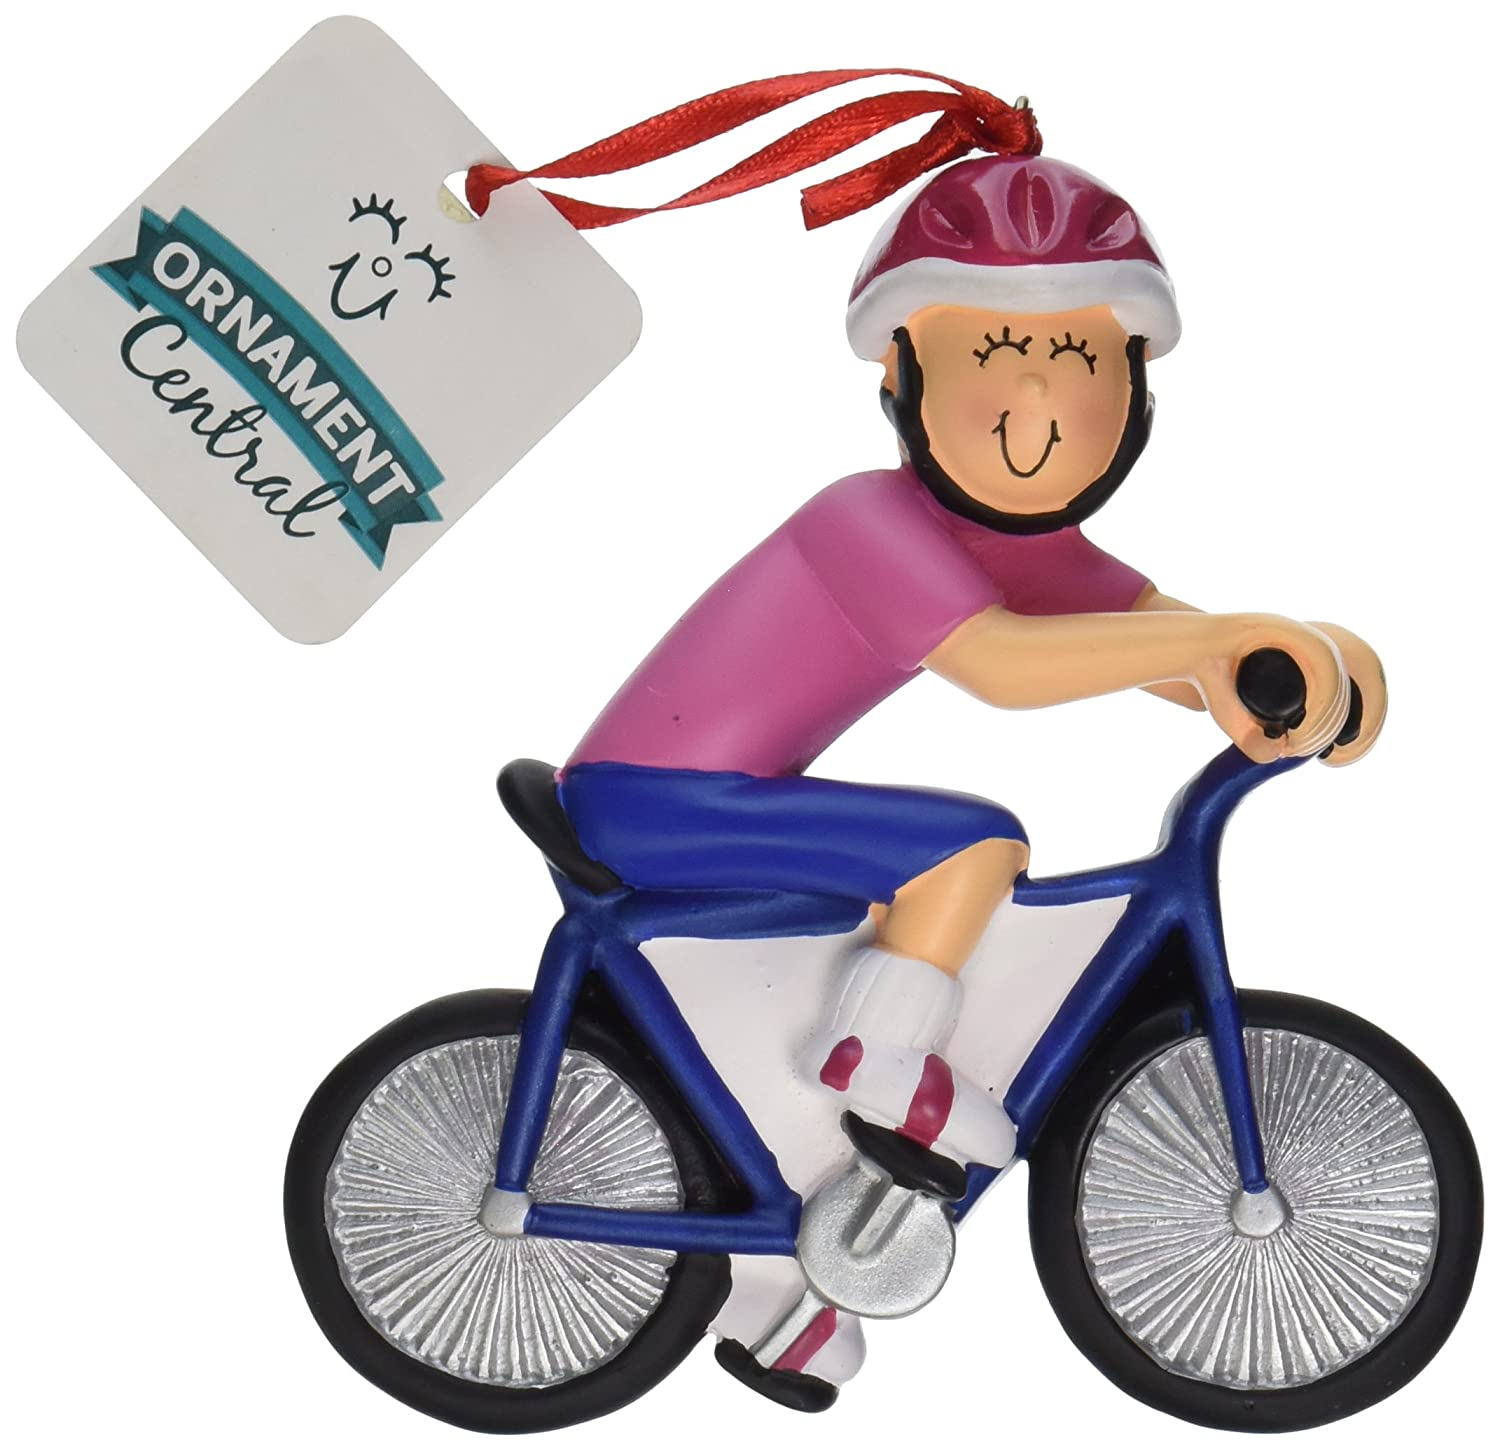 amazoncom ornament central oc 123 f female bicycle rider figurine home kitchen - Bicycle Christmas Ornament